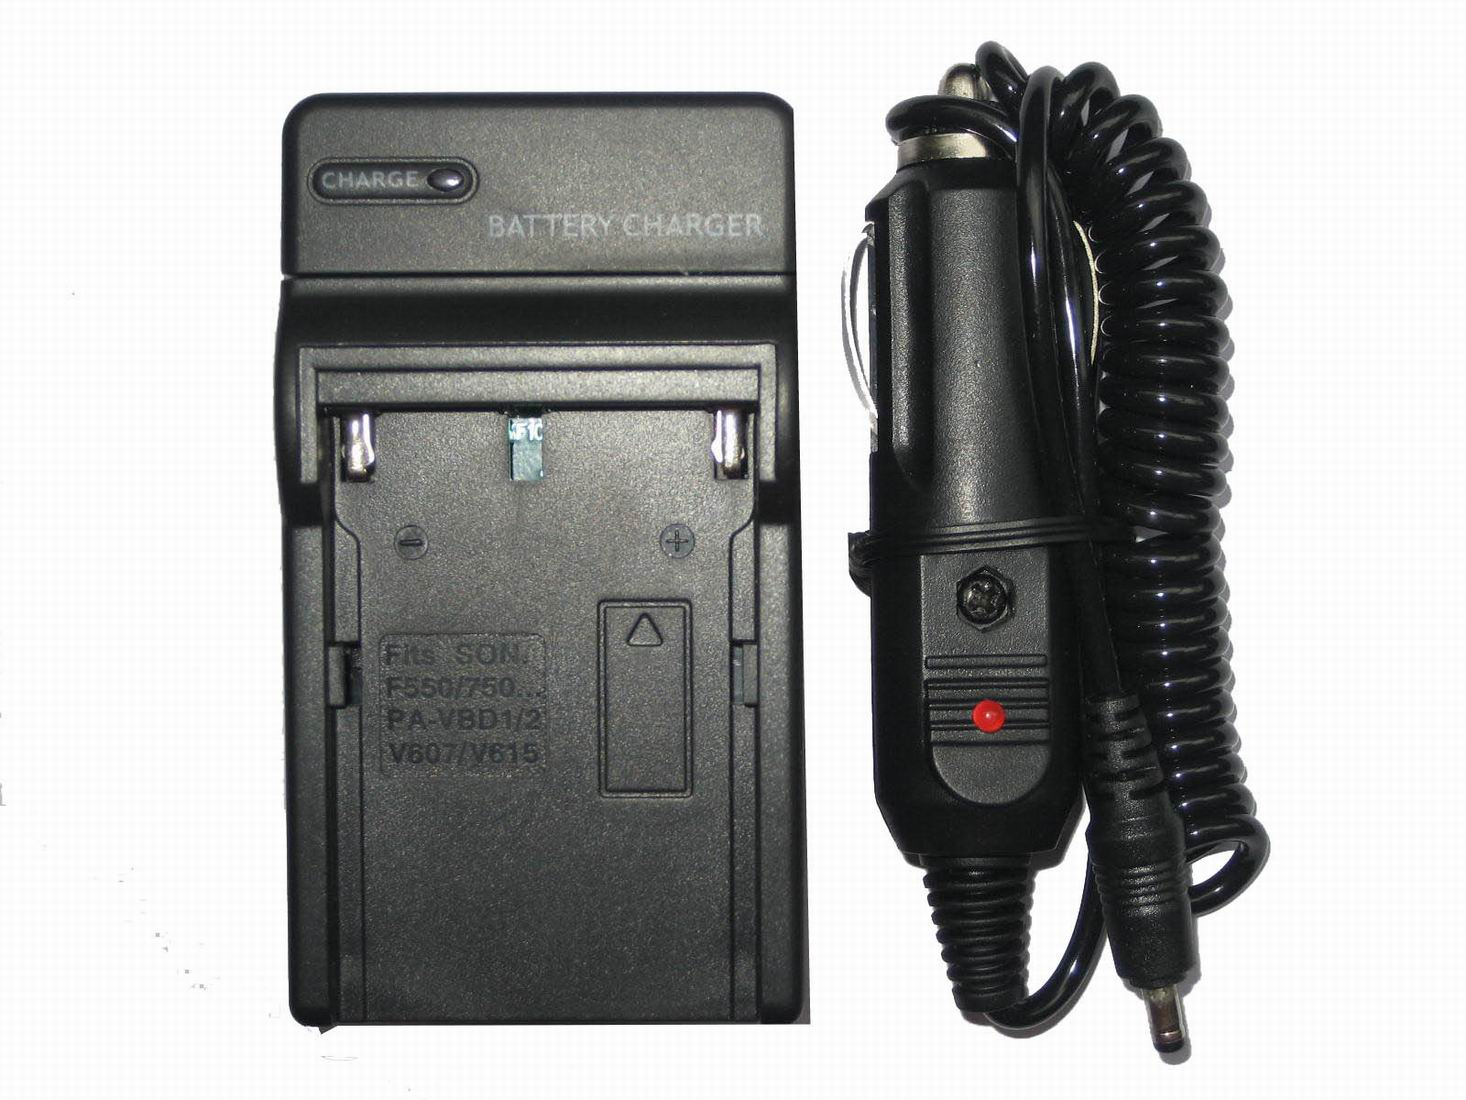 Digital Camera Battery Charger for Sony NP-F550 DCR-TRV203 TRV210 TRV220K TRV310 TRV315